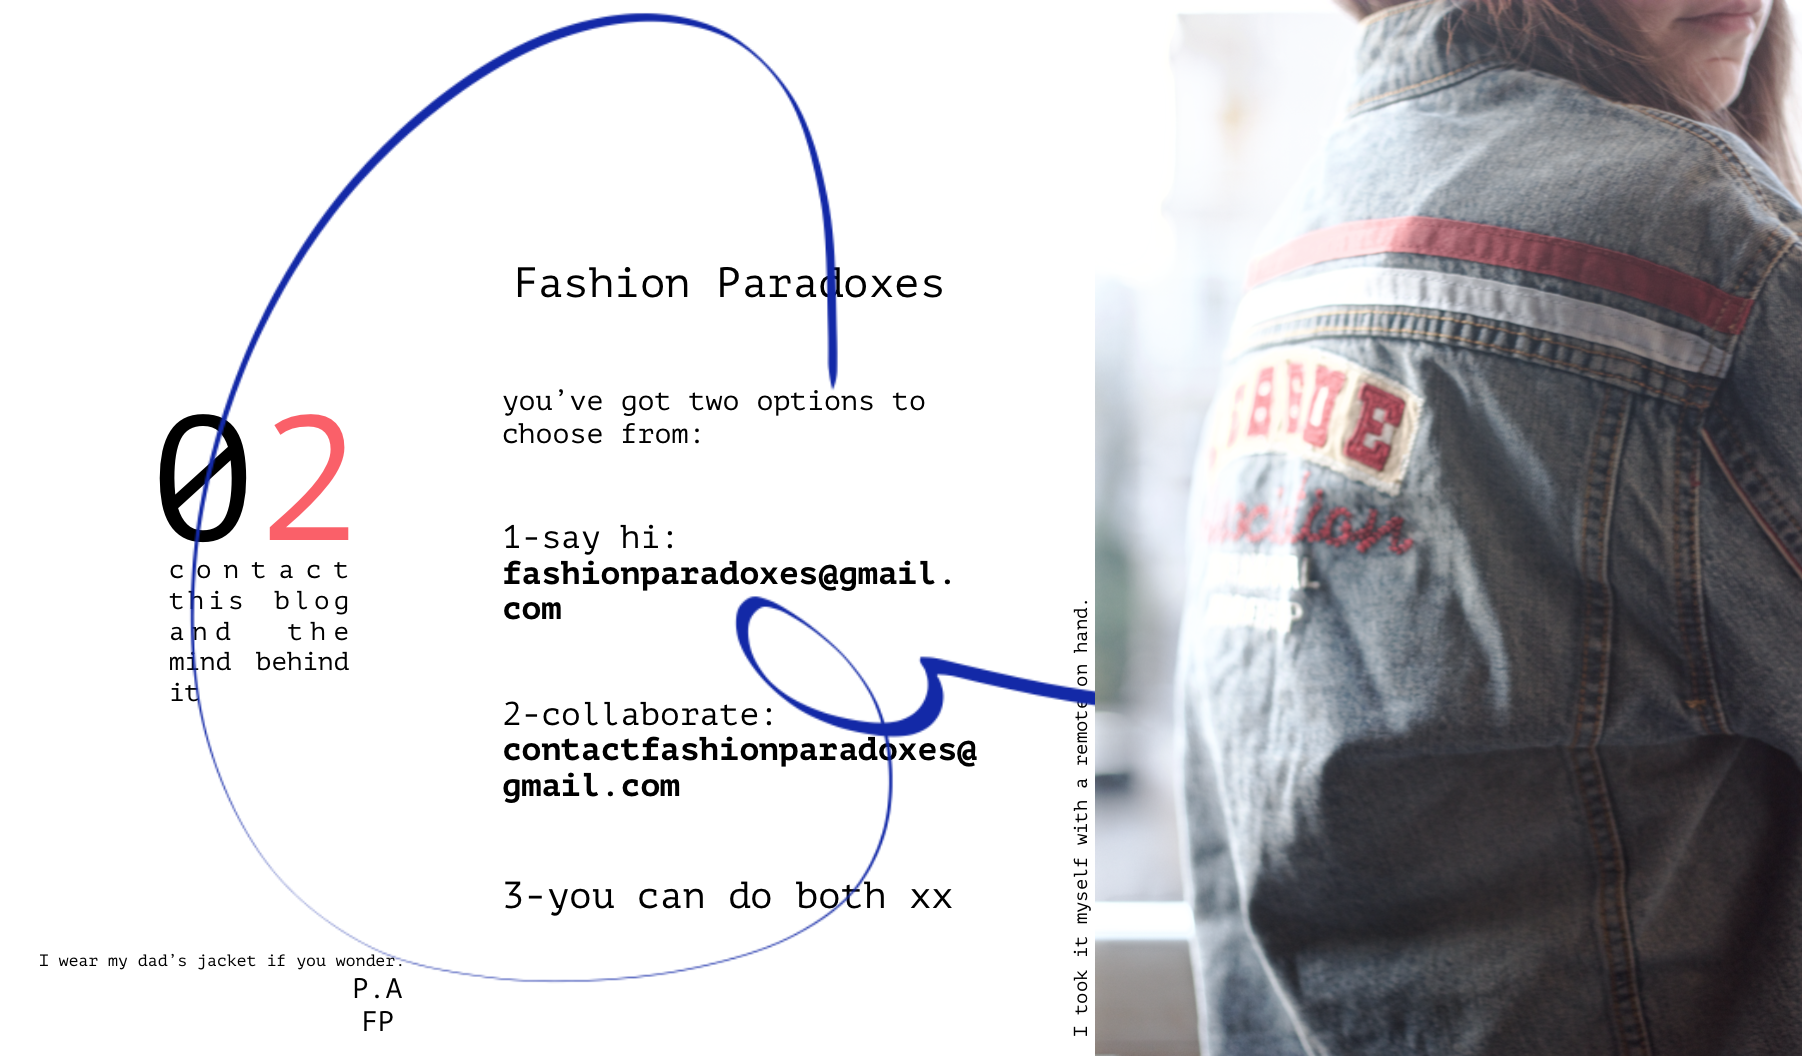 contact fashion paradoxes